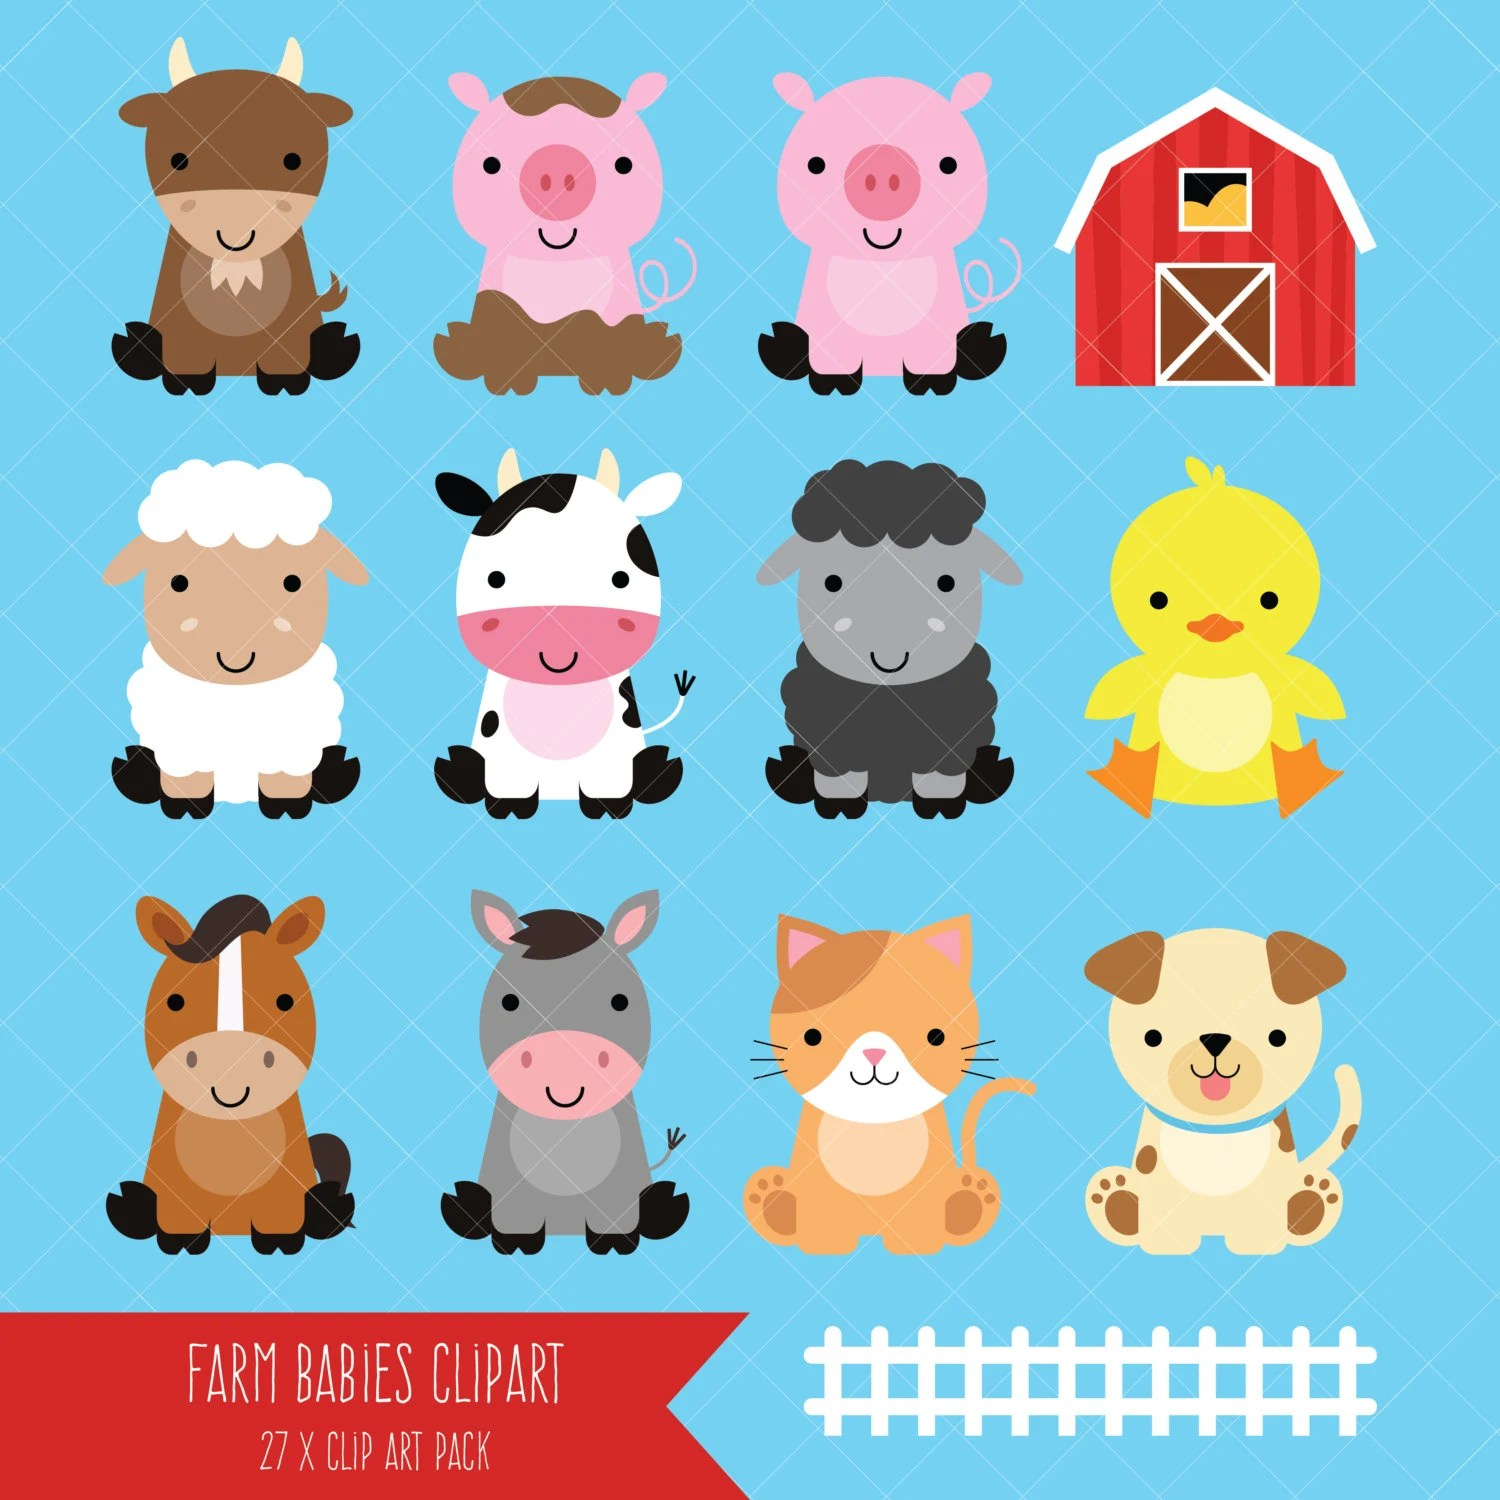 Art Animals Clip Barn Cute